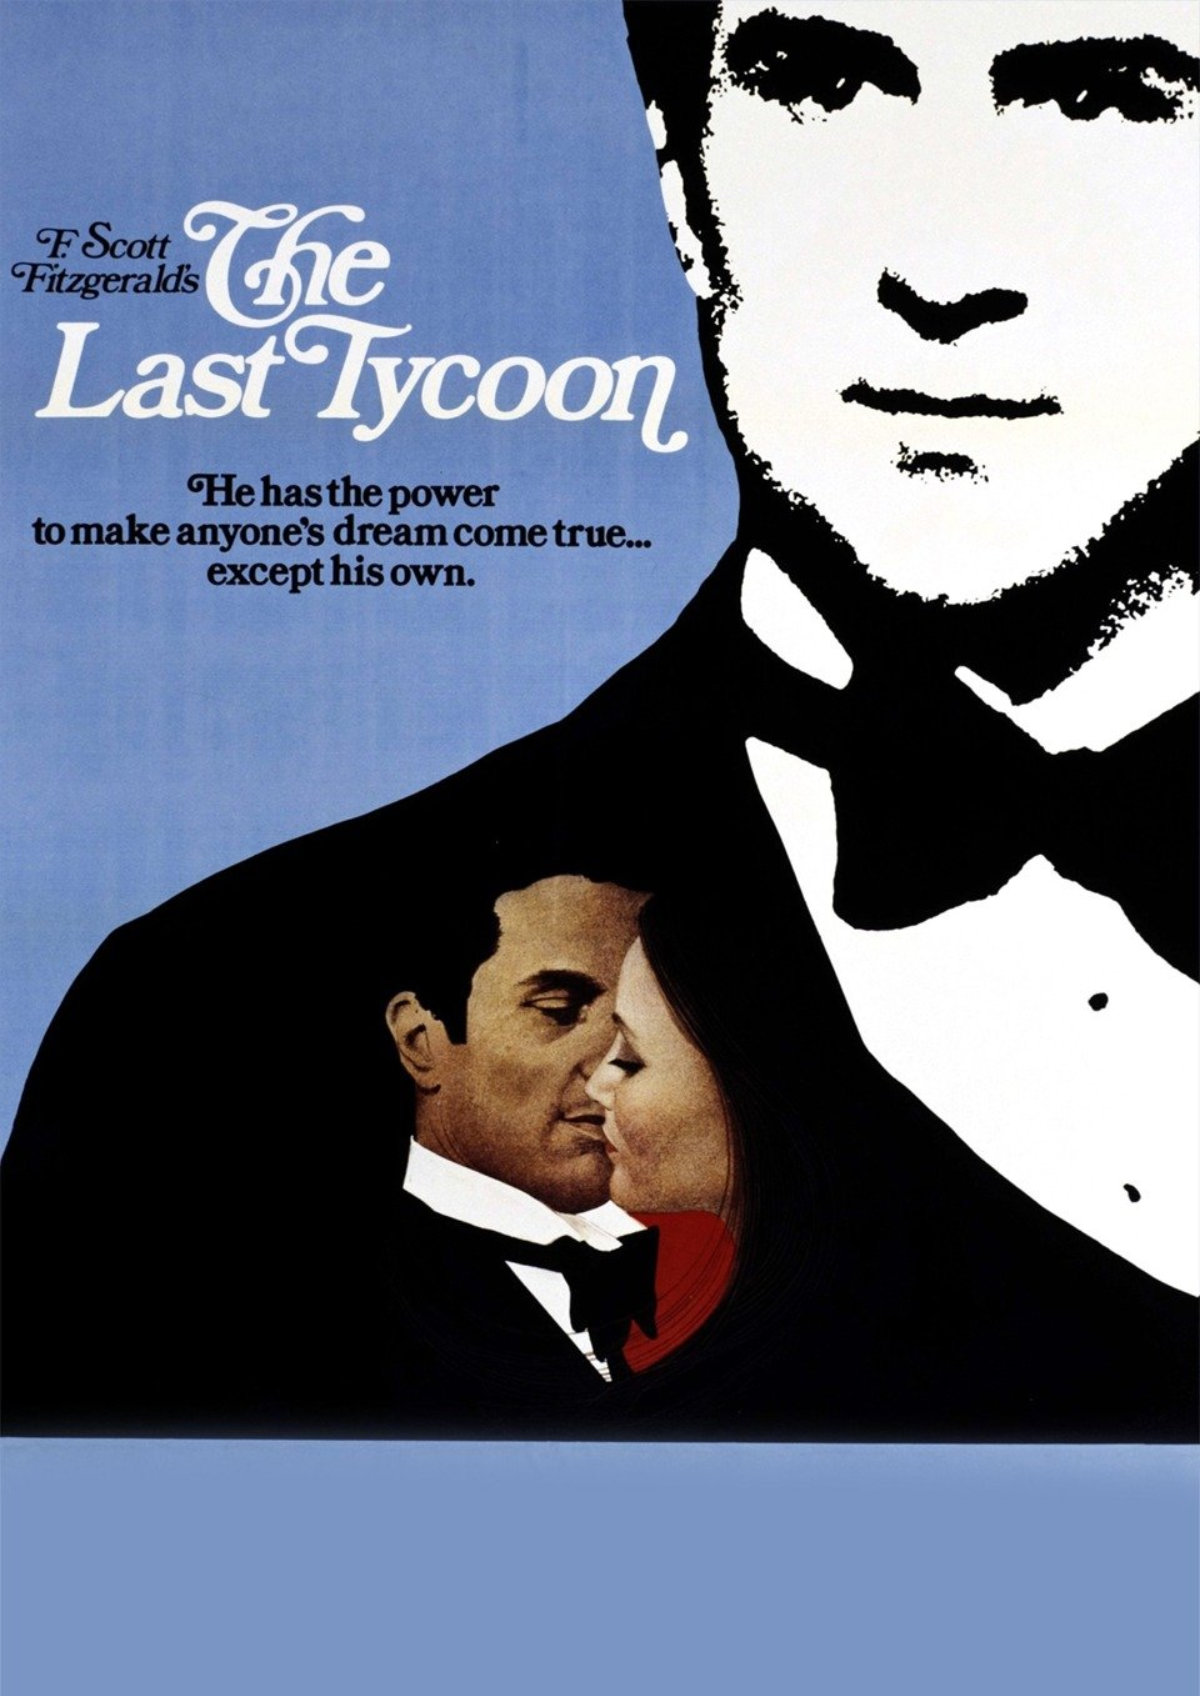 'The Last Tycoon' movie poster